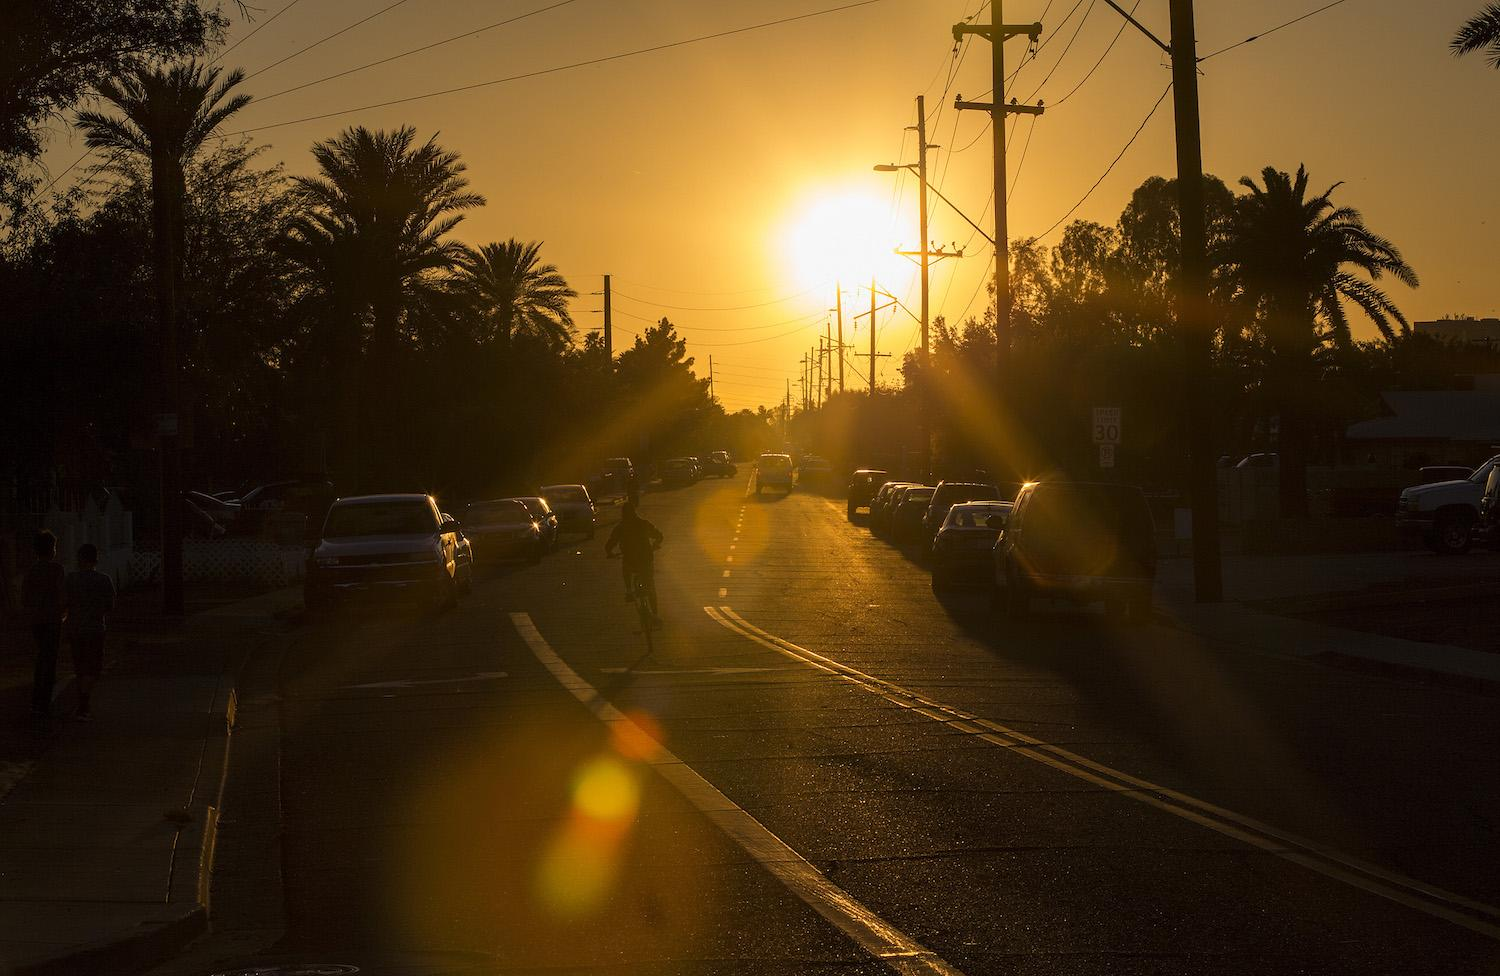 The setting sun beats down on a neighborhood just outside downtown on March 24, 2017 in Phoenix, Ariz. (Gina Ferazzi/Los Angeles Times/TNS)